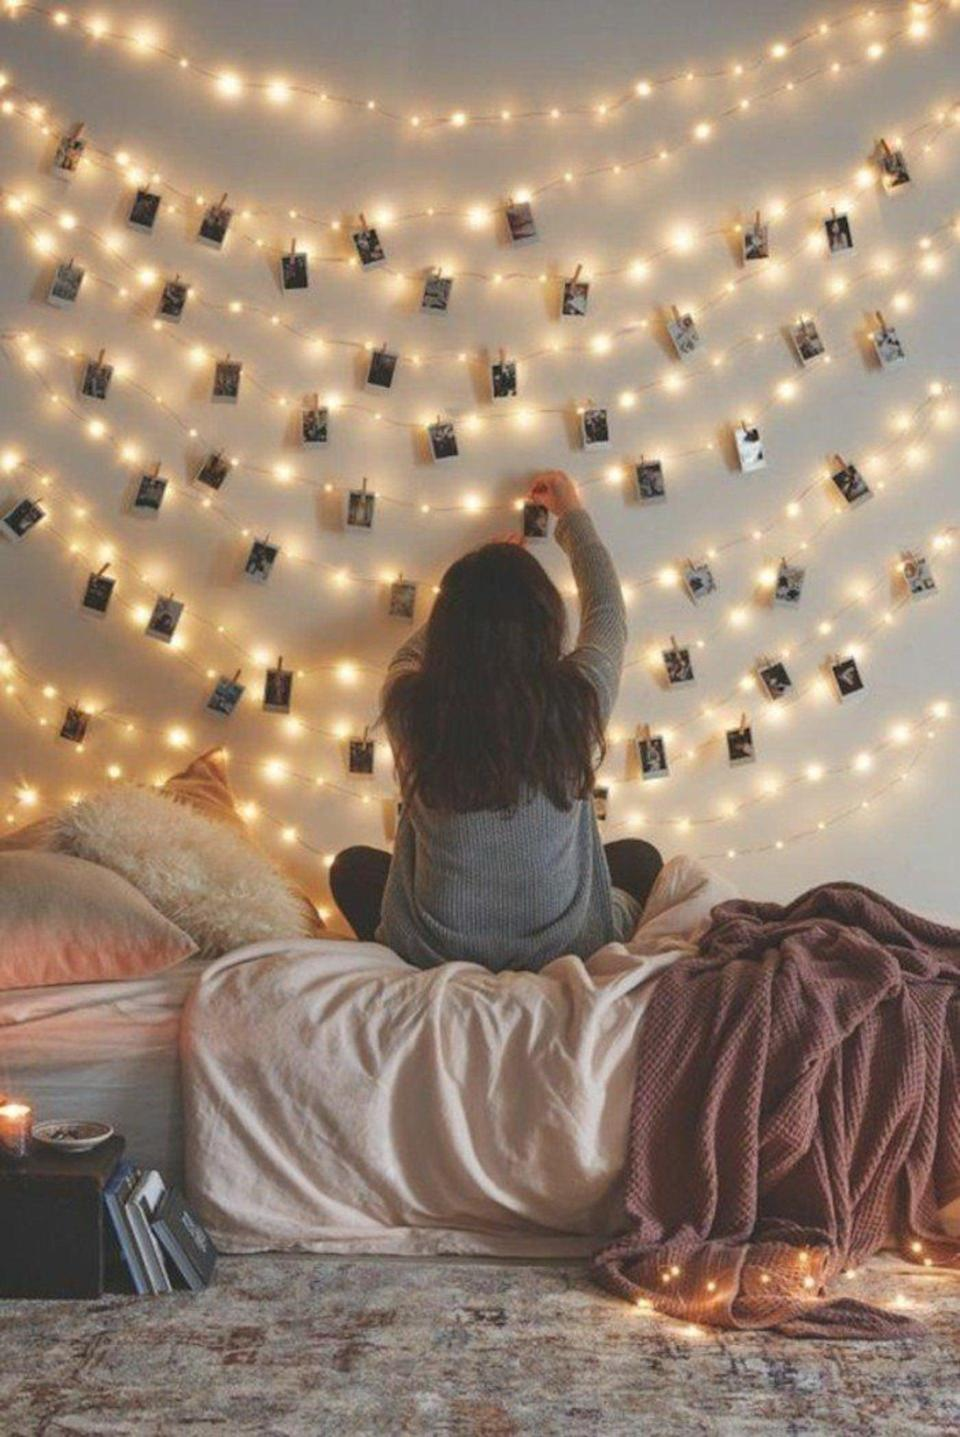 <p>Make any room especially cozy with these <span>66 Ft Waterproof Starry Fairy Copper String Lights</span> ($13). The lights add some ambiance, and you can hang your favorite memories from them.</p>